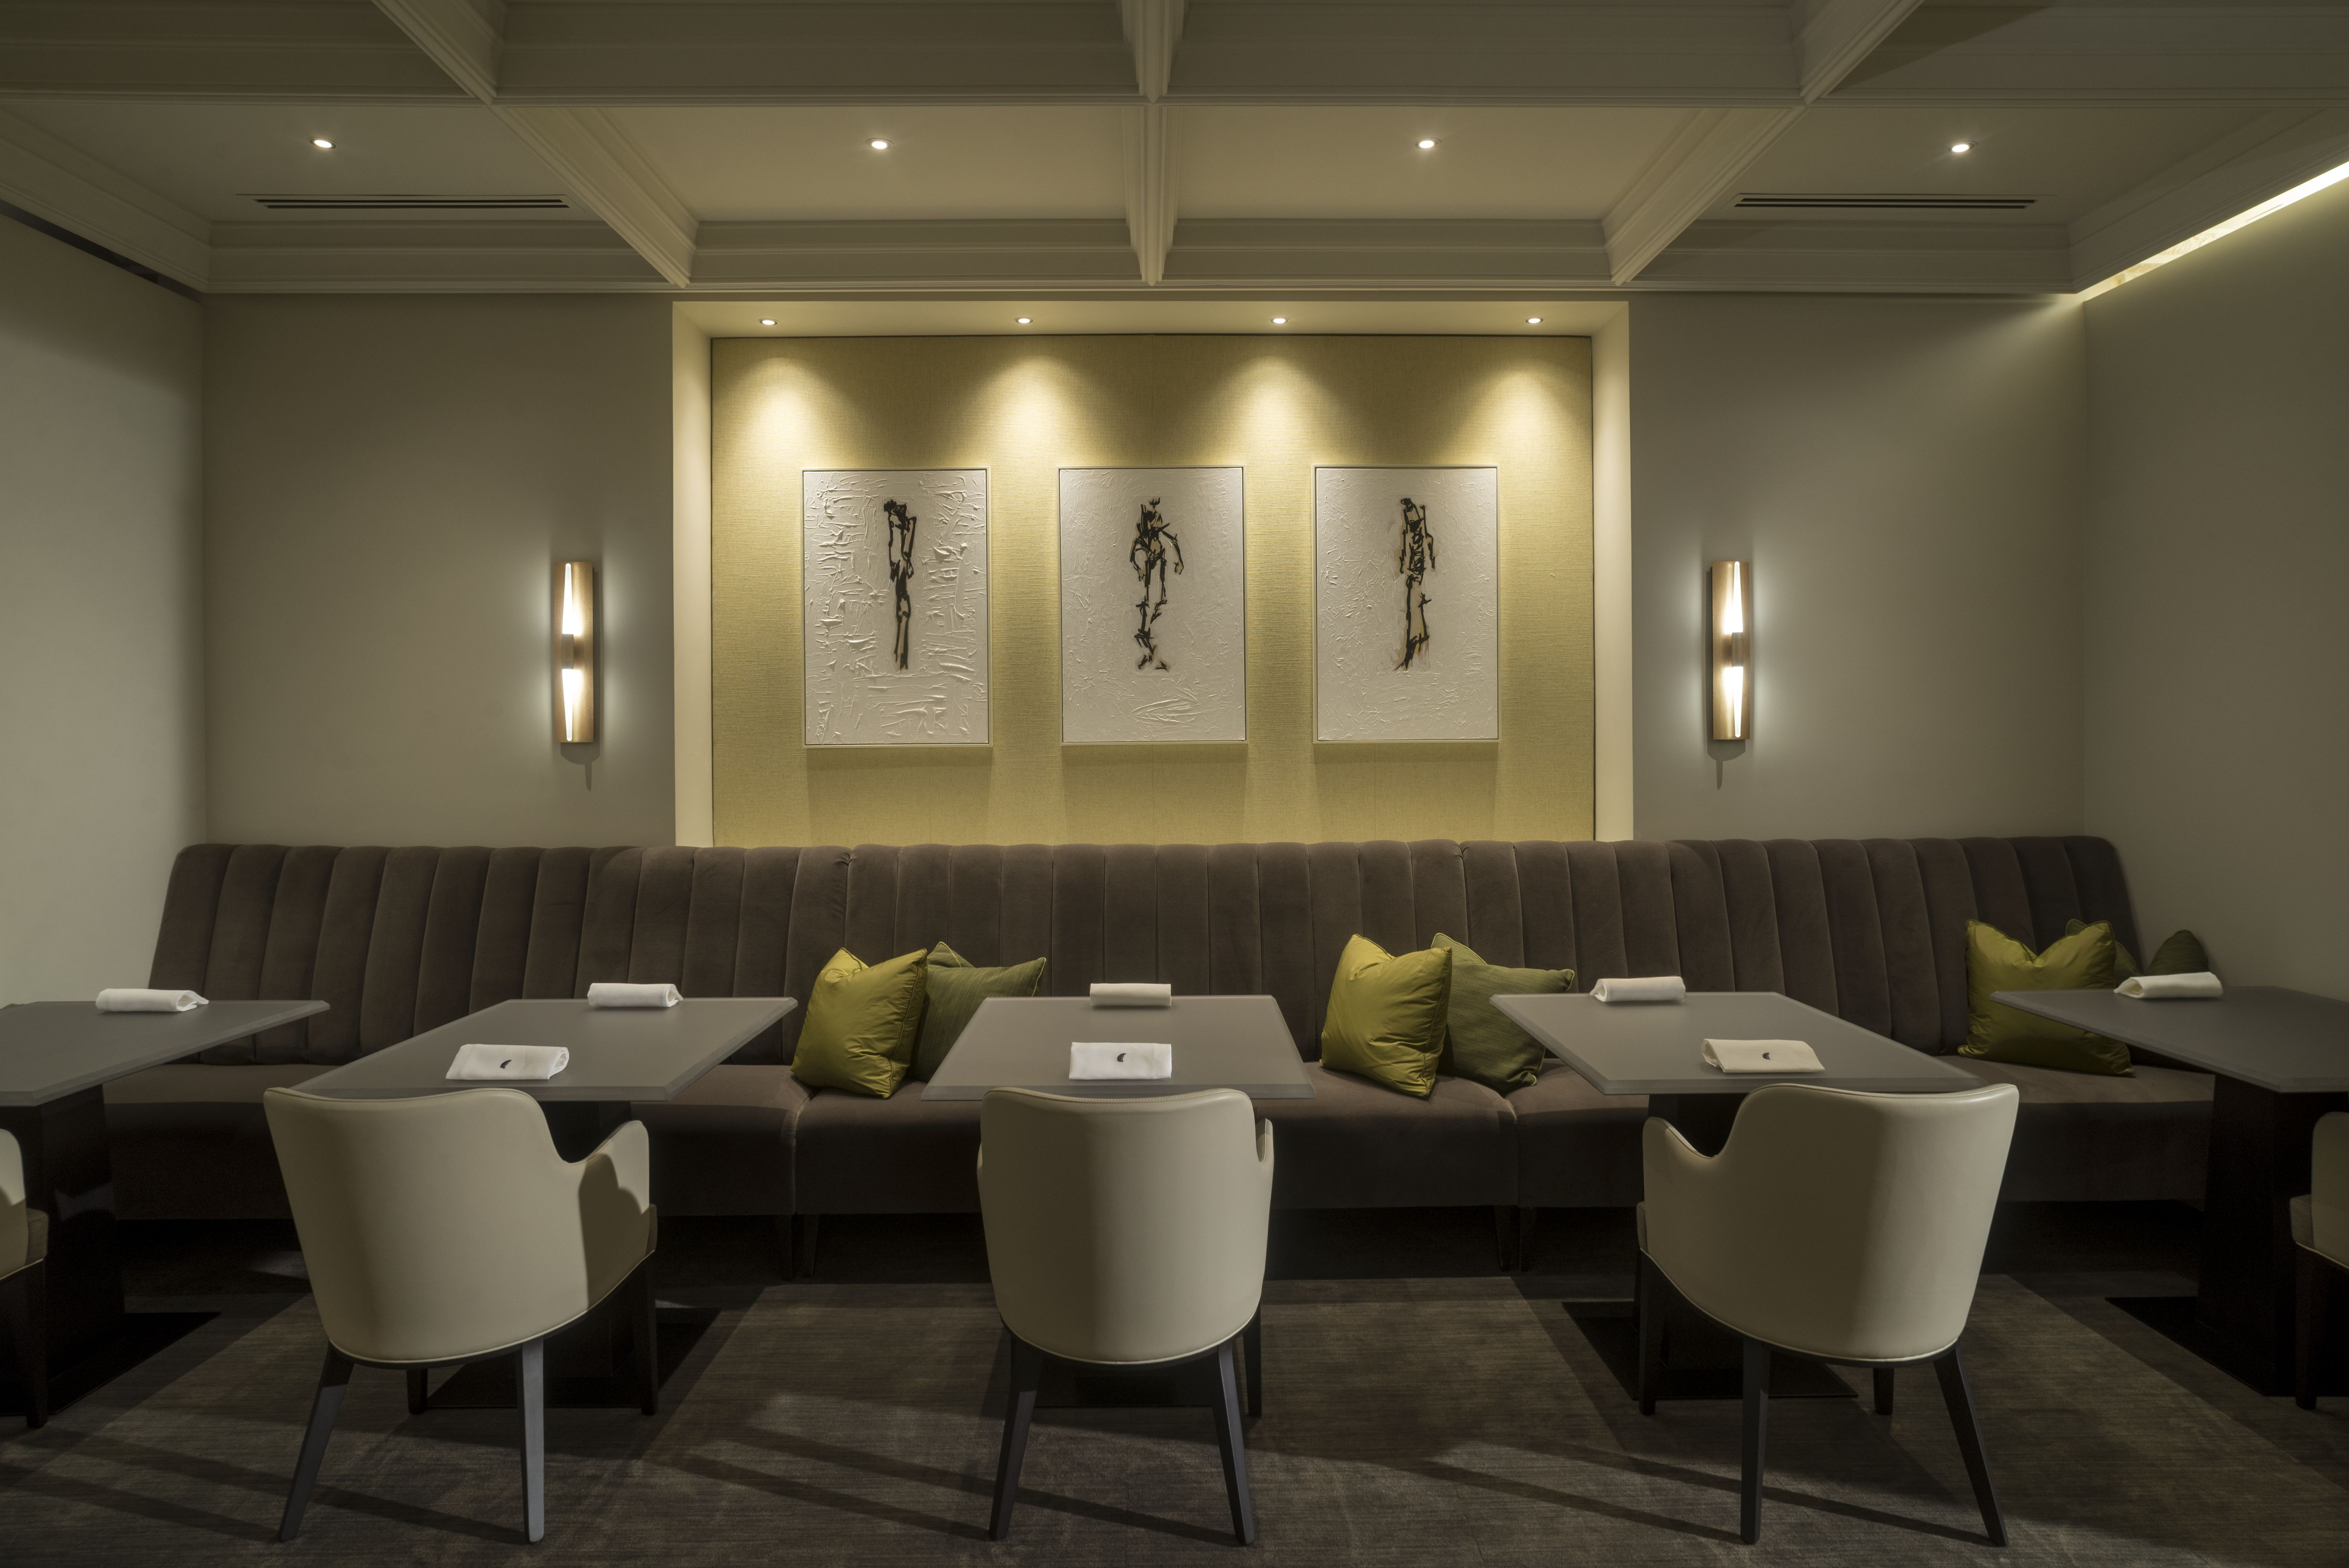 white leather chairs for sale zac swivel chair alinea 2.0: reinventing one of the world's best restaurants - eater chicago